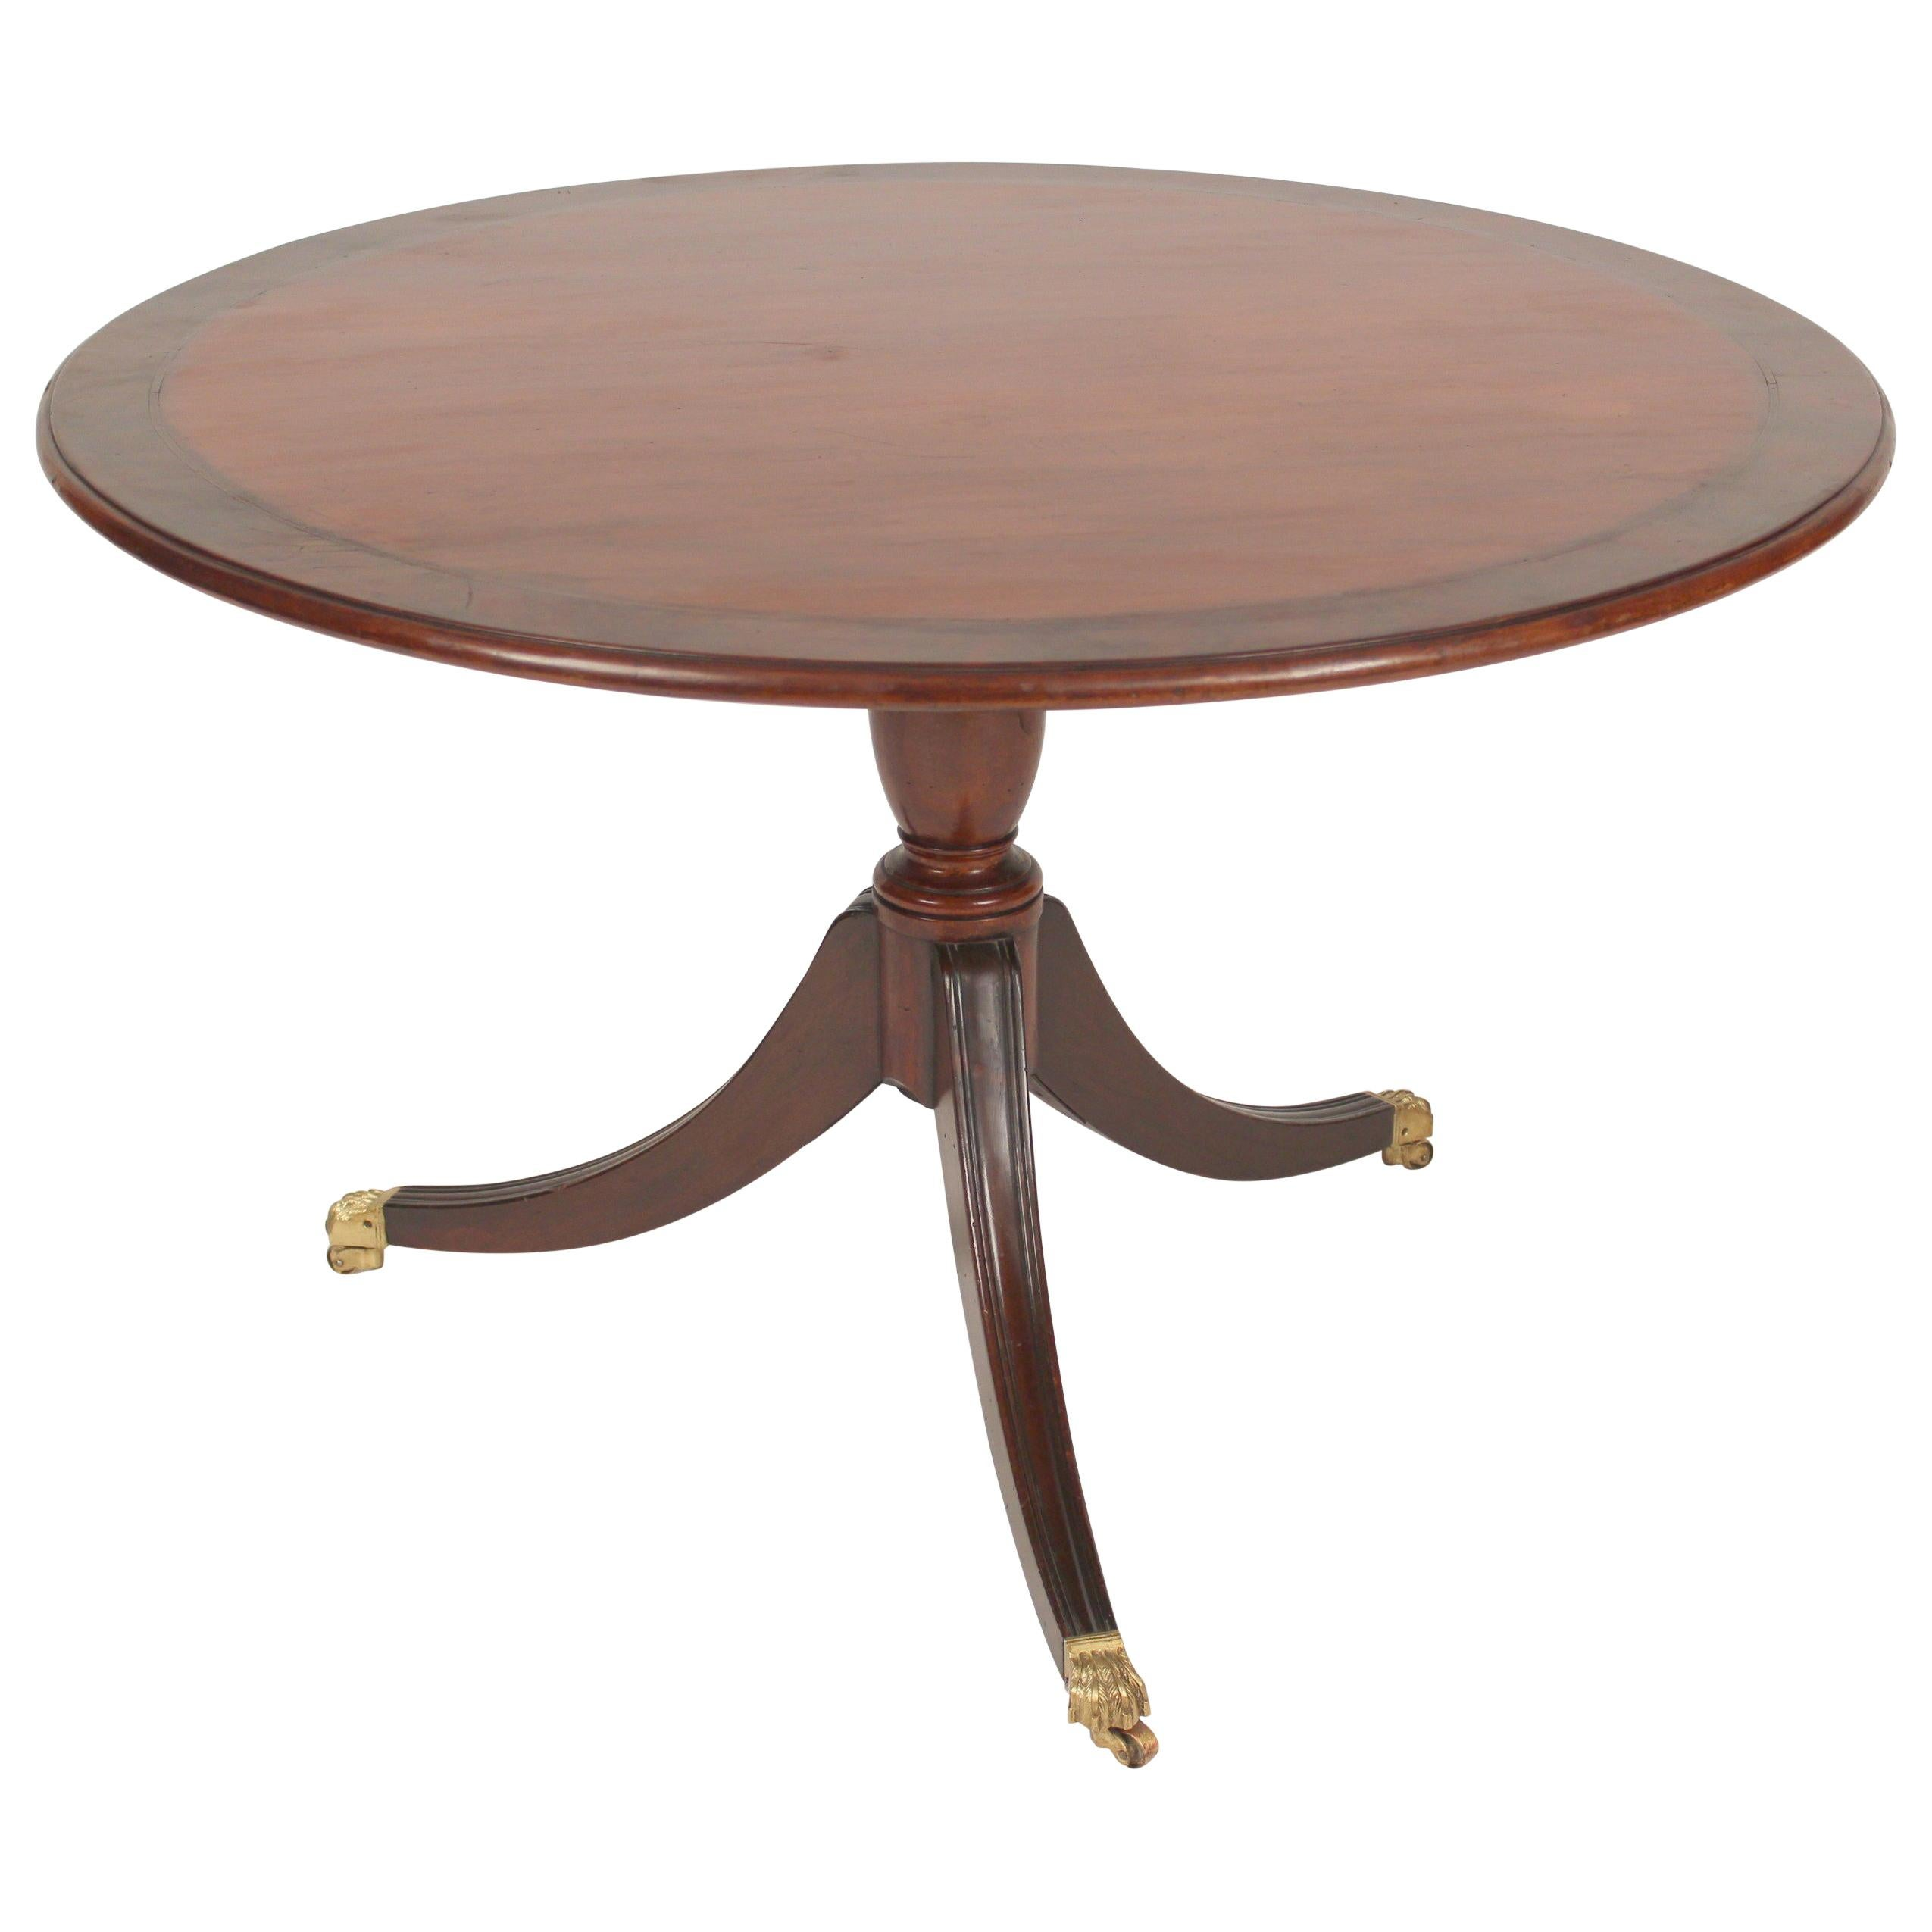 George III Style Mahogany Games / Center Table